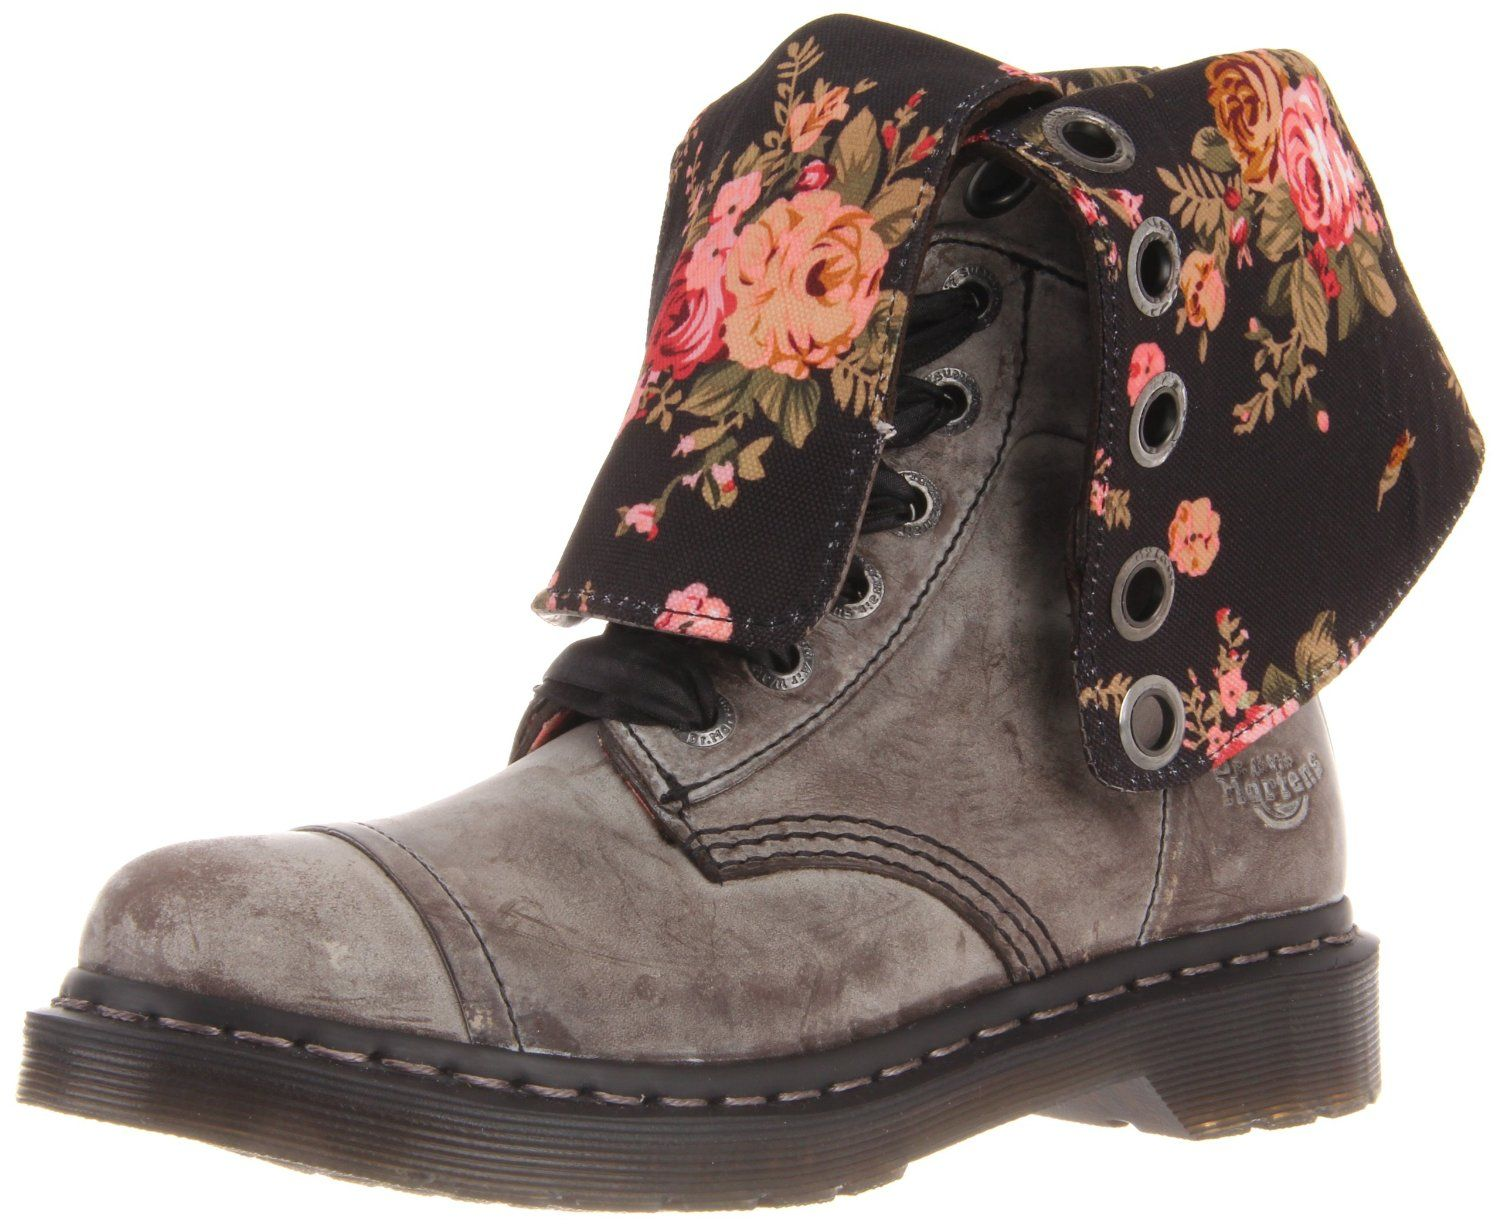 Model Dr. Martens Womenu0026#39;s Pascal Virginia Leather 8-Eye Lace Up Boots - Black | FREE UK Delivery | Allsole